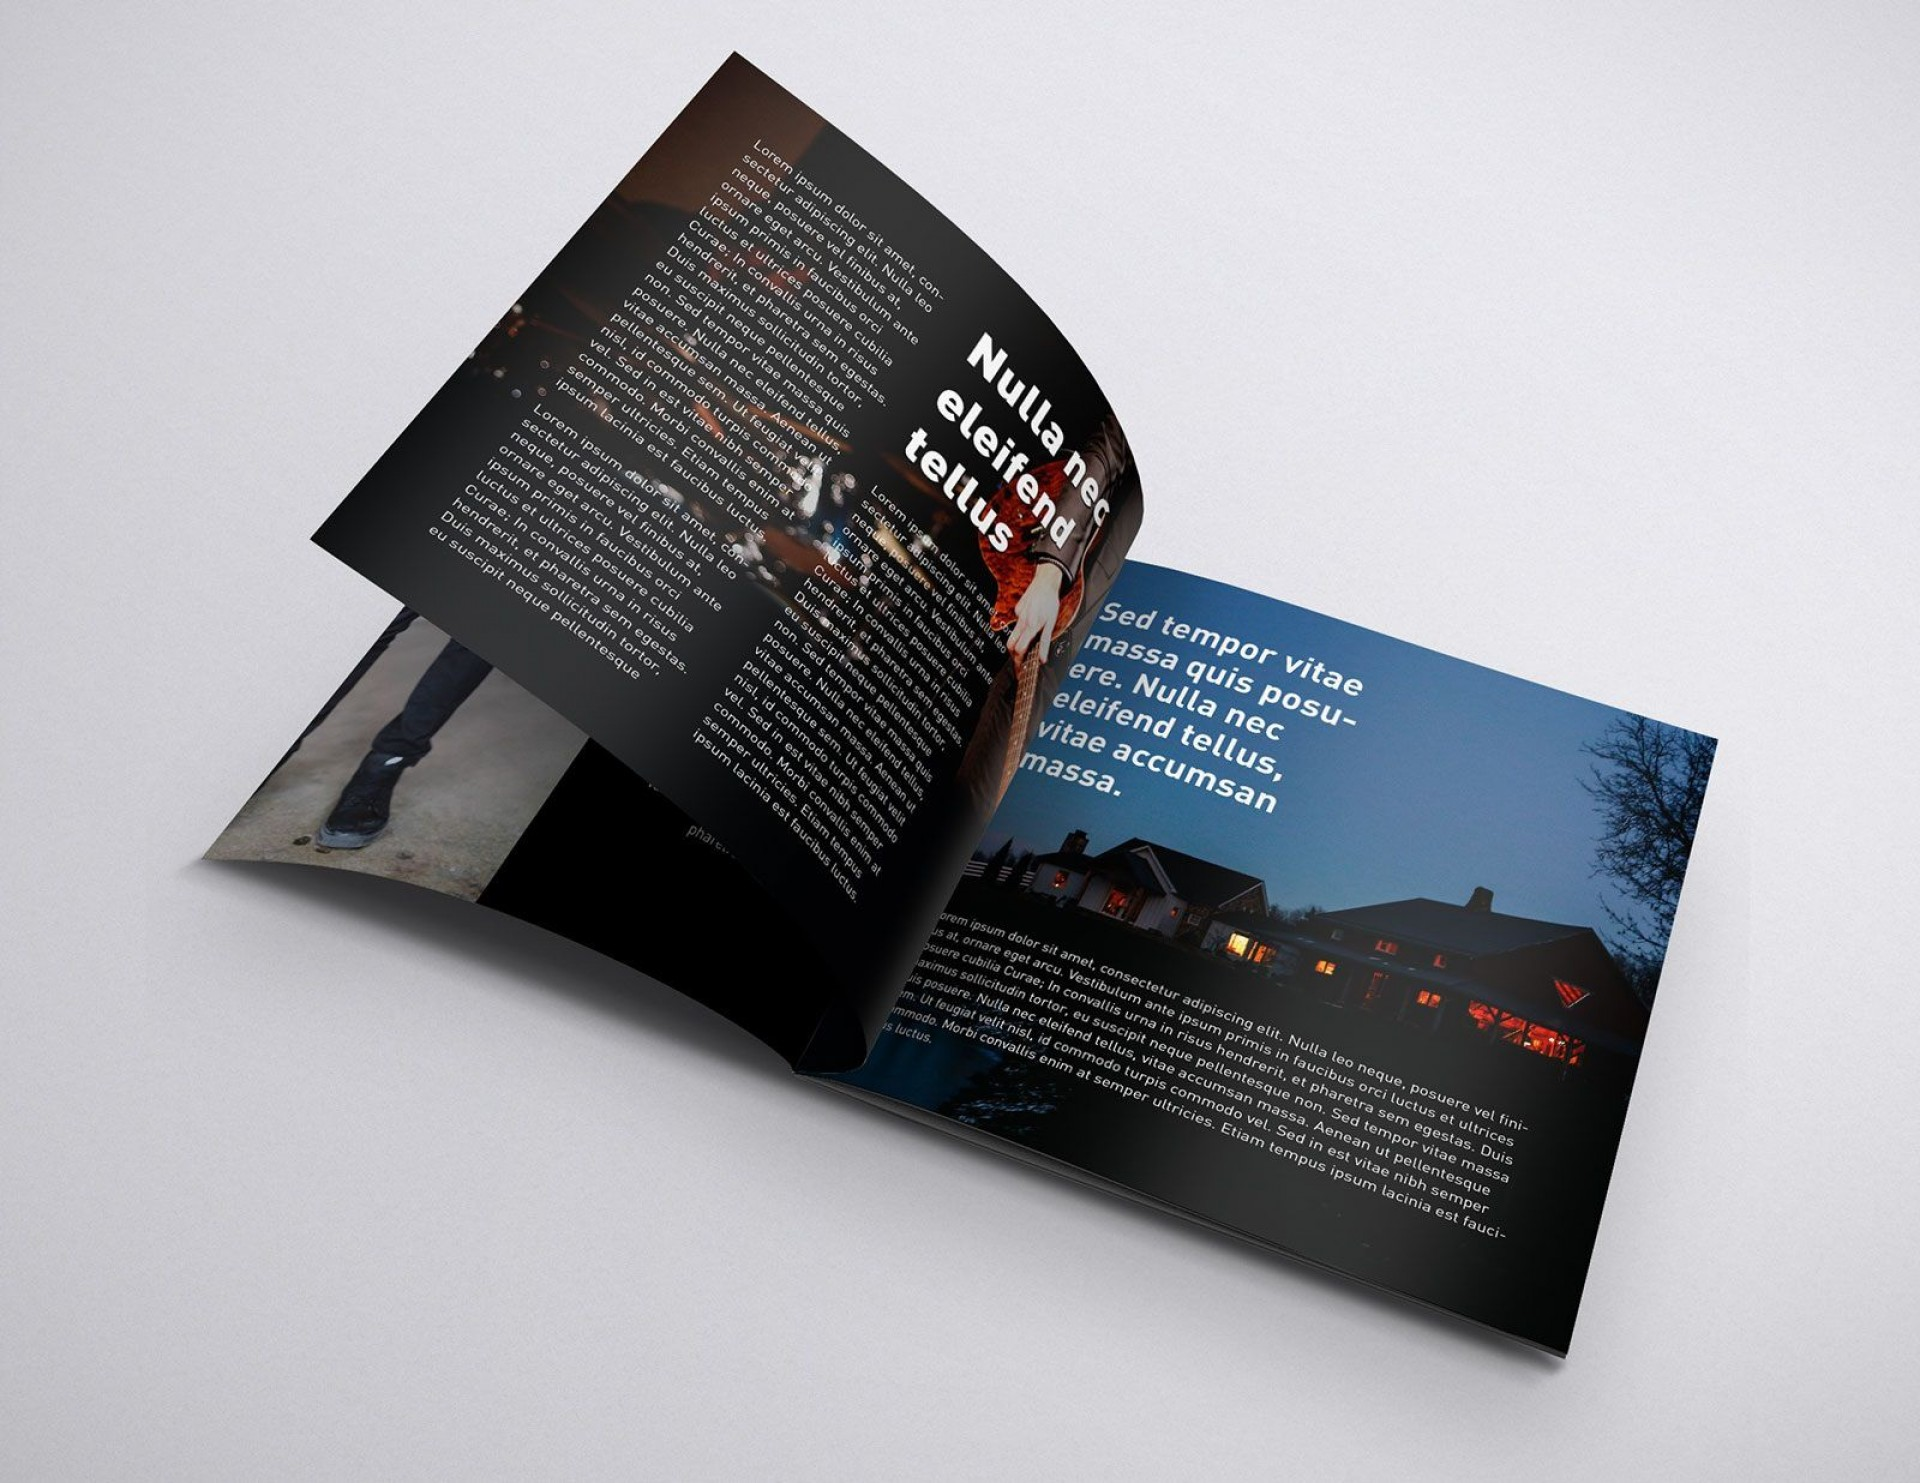 004 Stunning Square Brochure Template Psd Free Download Design 1920